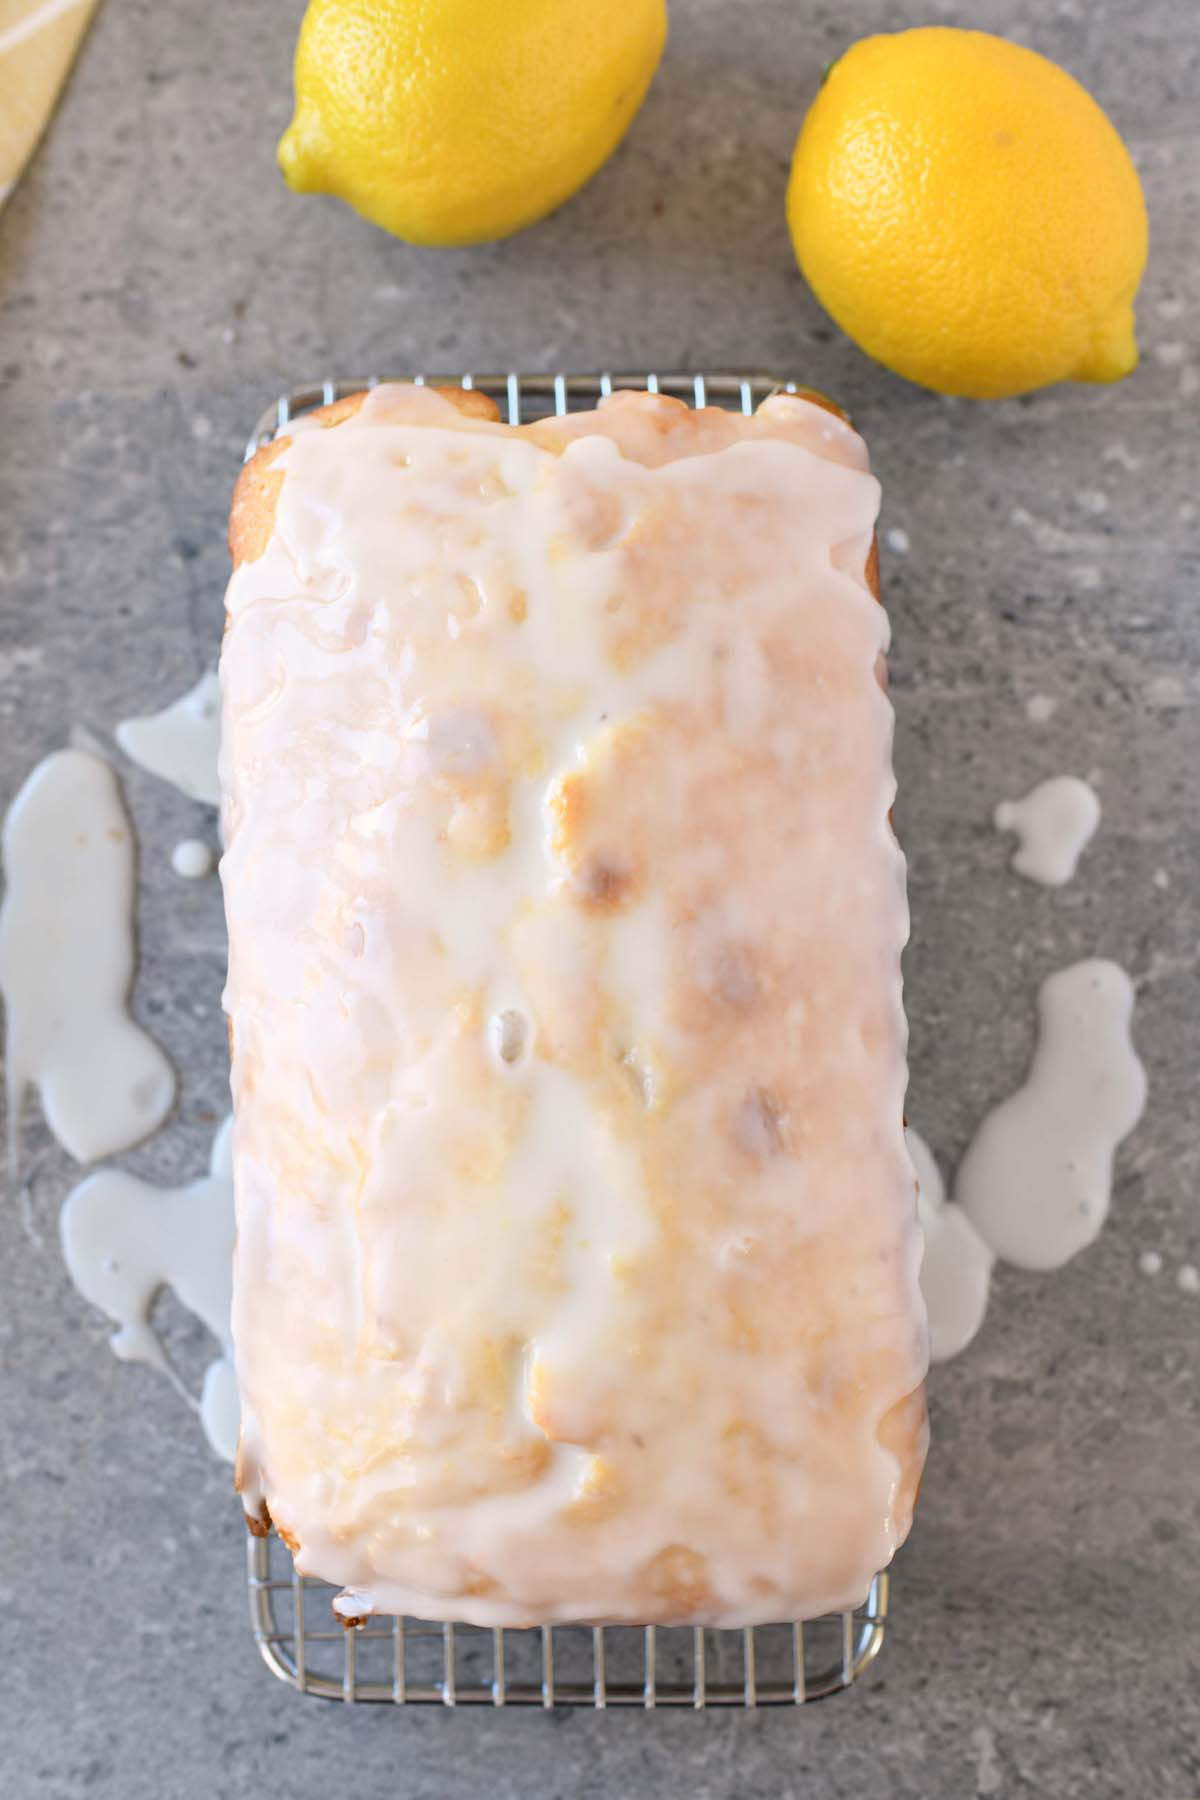 Iced Lemon Pound Cake on a cooling rack. There are 2 yellow lemon in the shot as well.